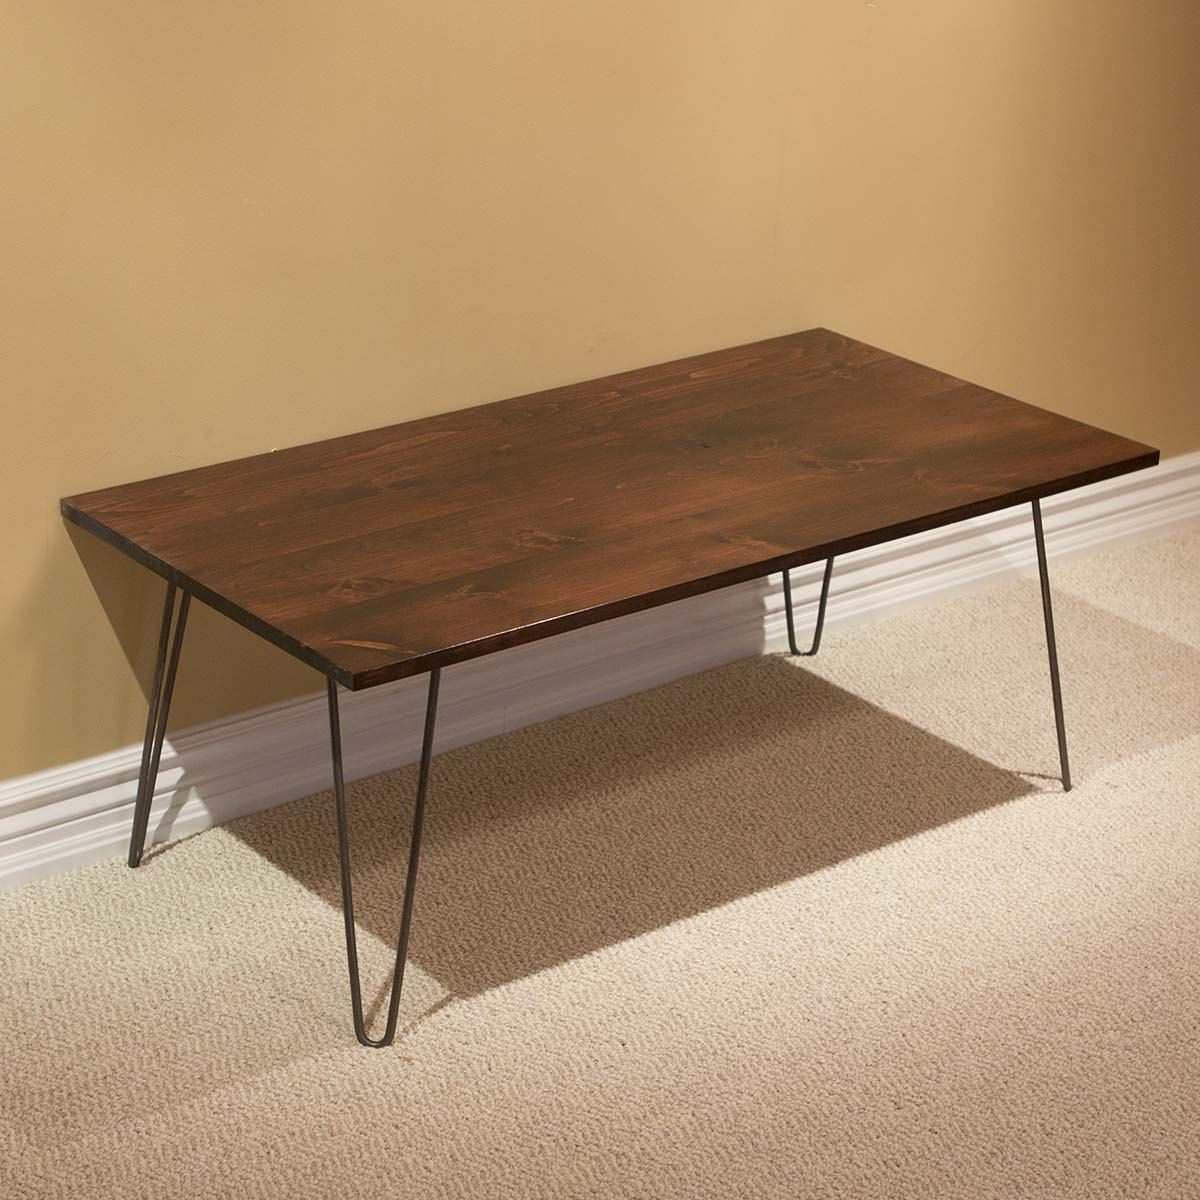 Spnc22 Solid Wood Pine Coffee Table W 2 Rod Hairpin Legs By